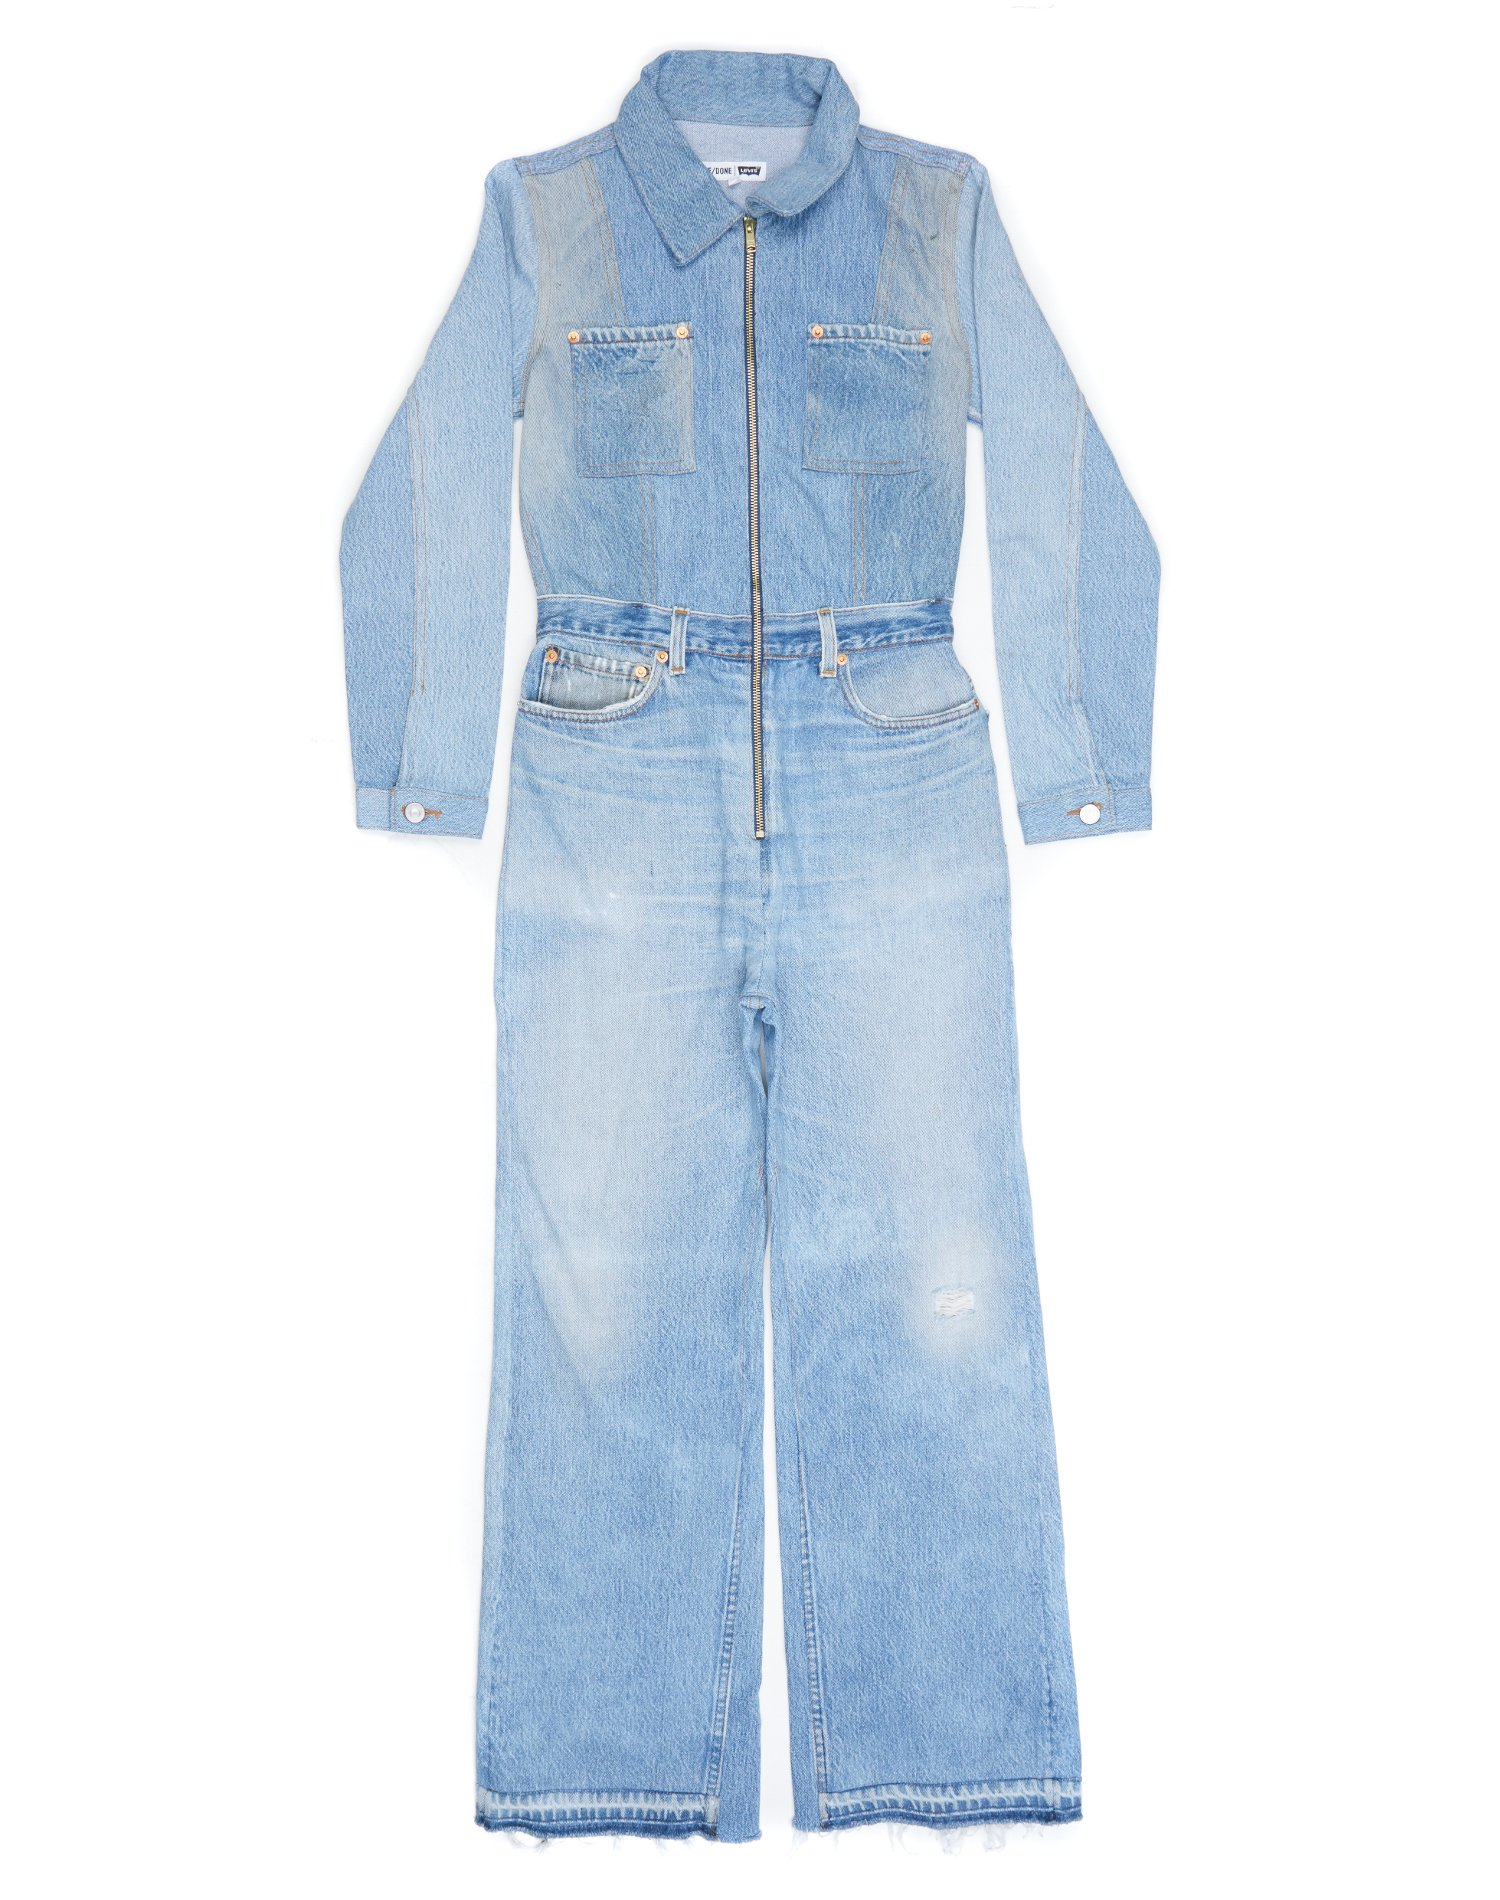 https://shopredone.com/collections/flare-jeans-collection/products/no-suhdj1134025